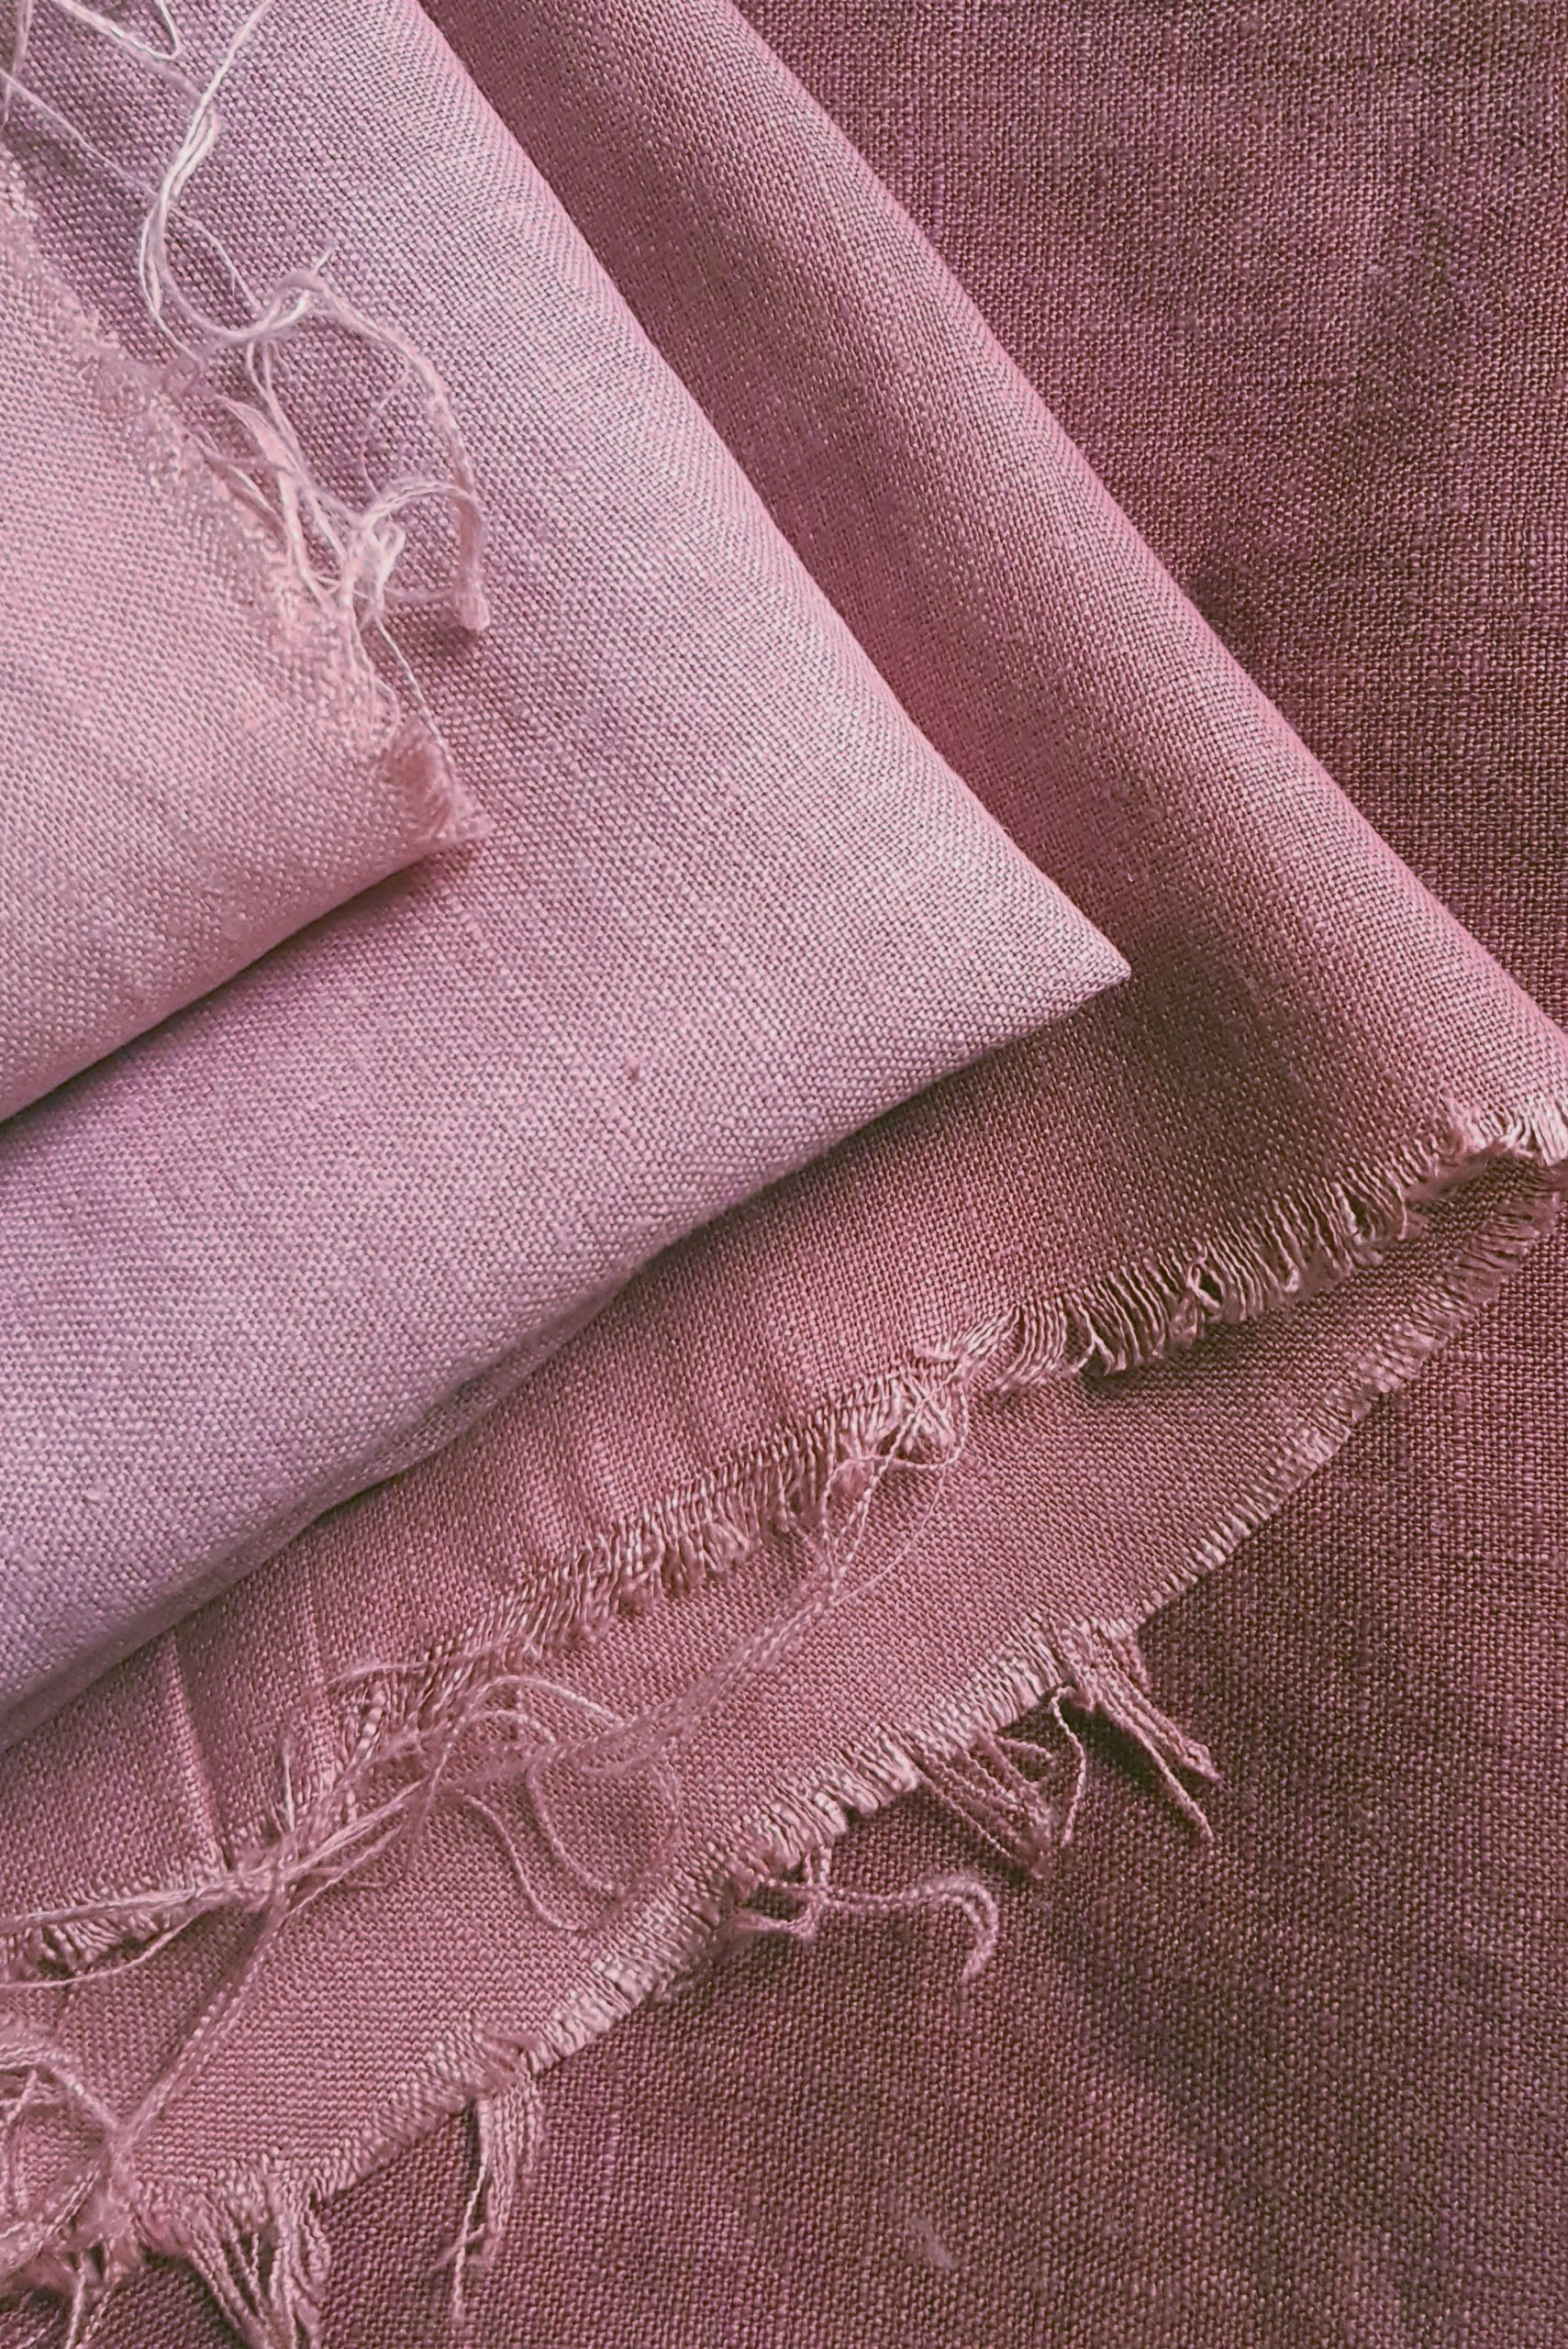 Shades of hand dyed Plum Red linen